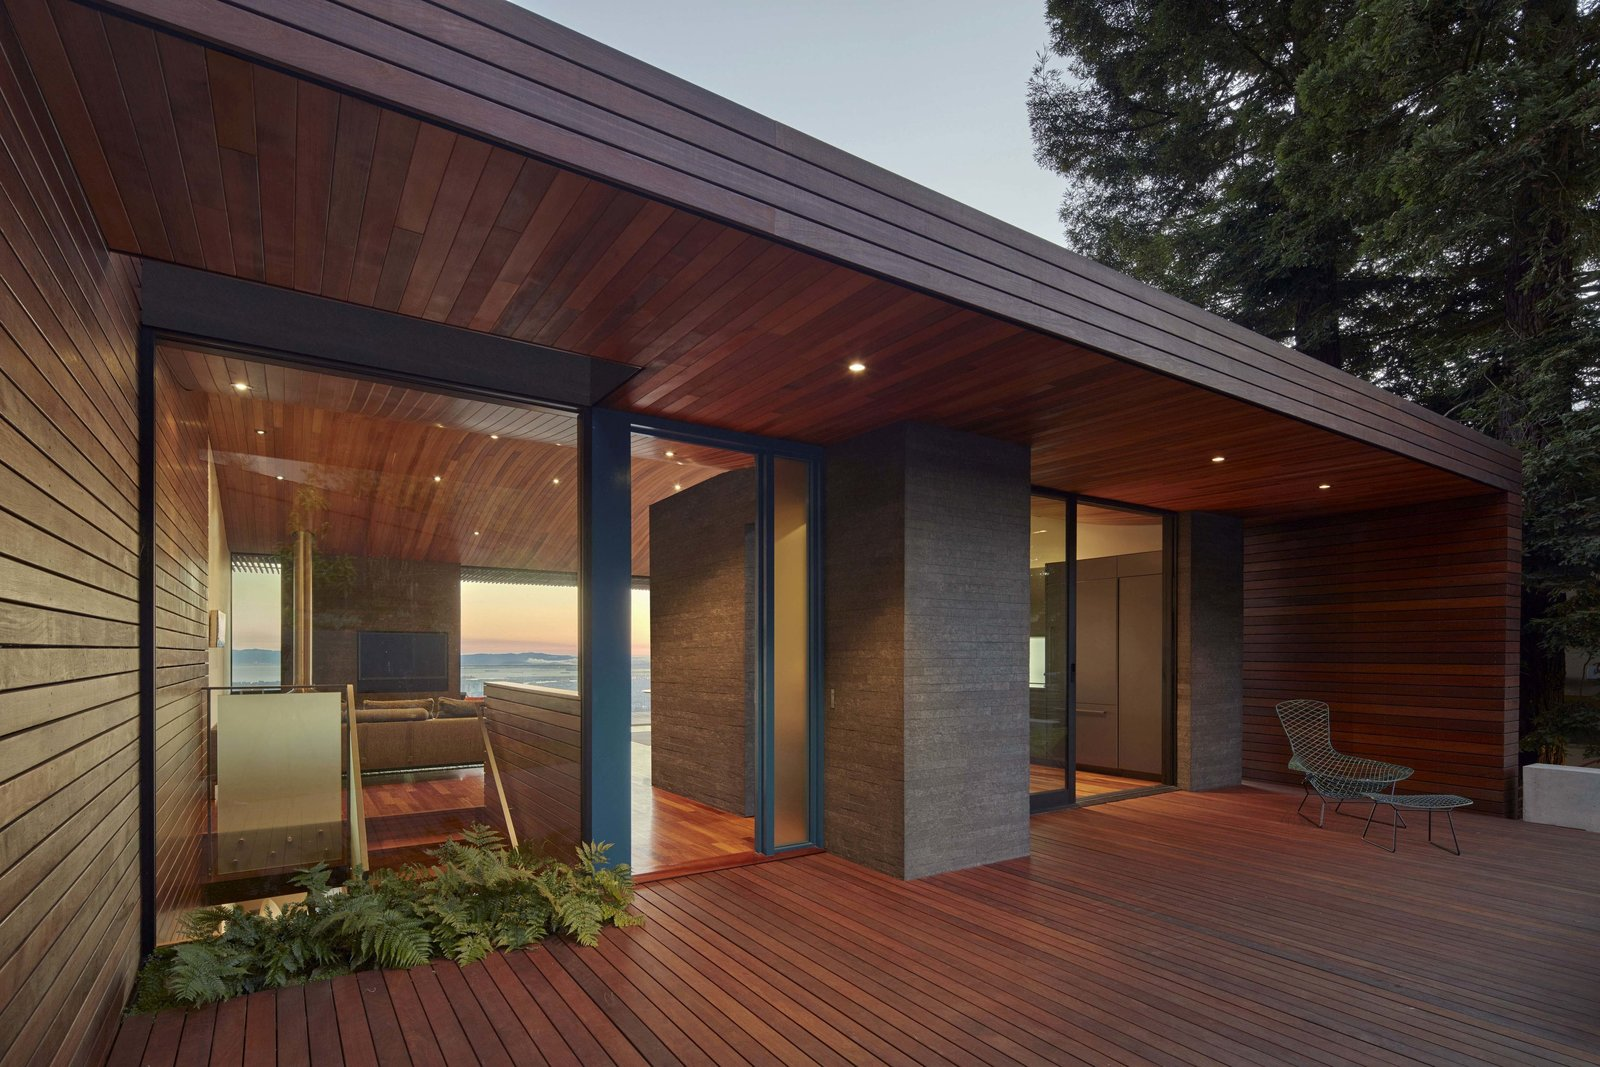 Entry at dusk Tagged: Outdoor, Front Yard, Shrubs, Small Patio, Porch, Deck, and Wood Patio, Porch, Deck.  Skyline House by Terry & Terry Architecture